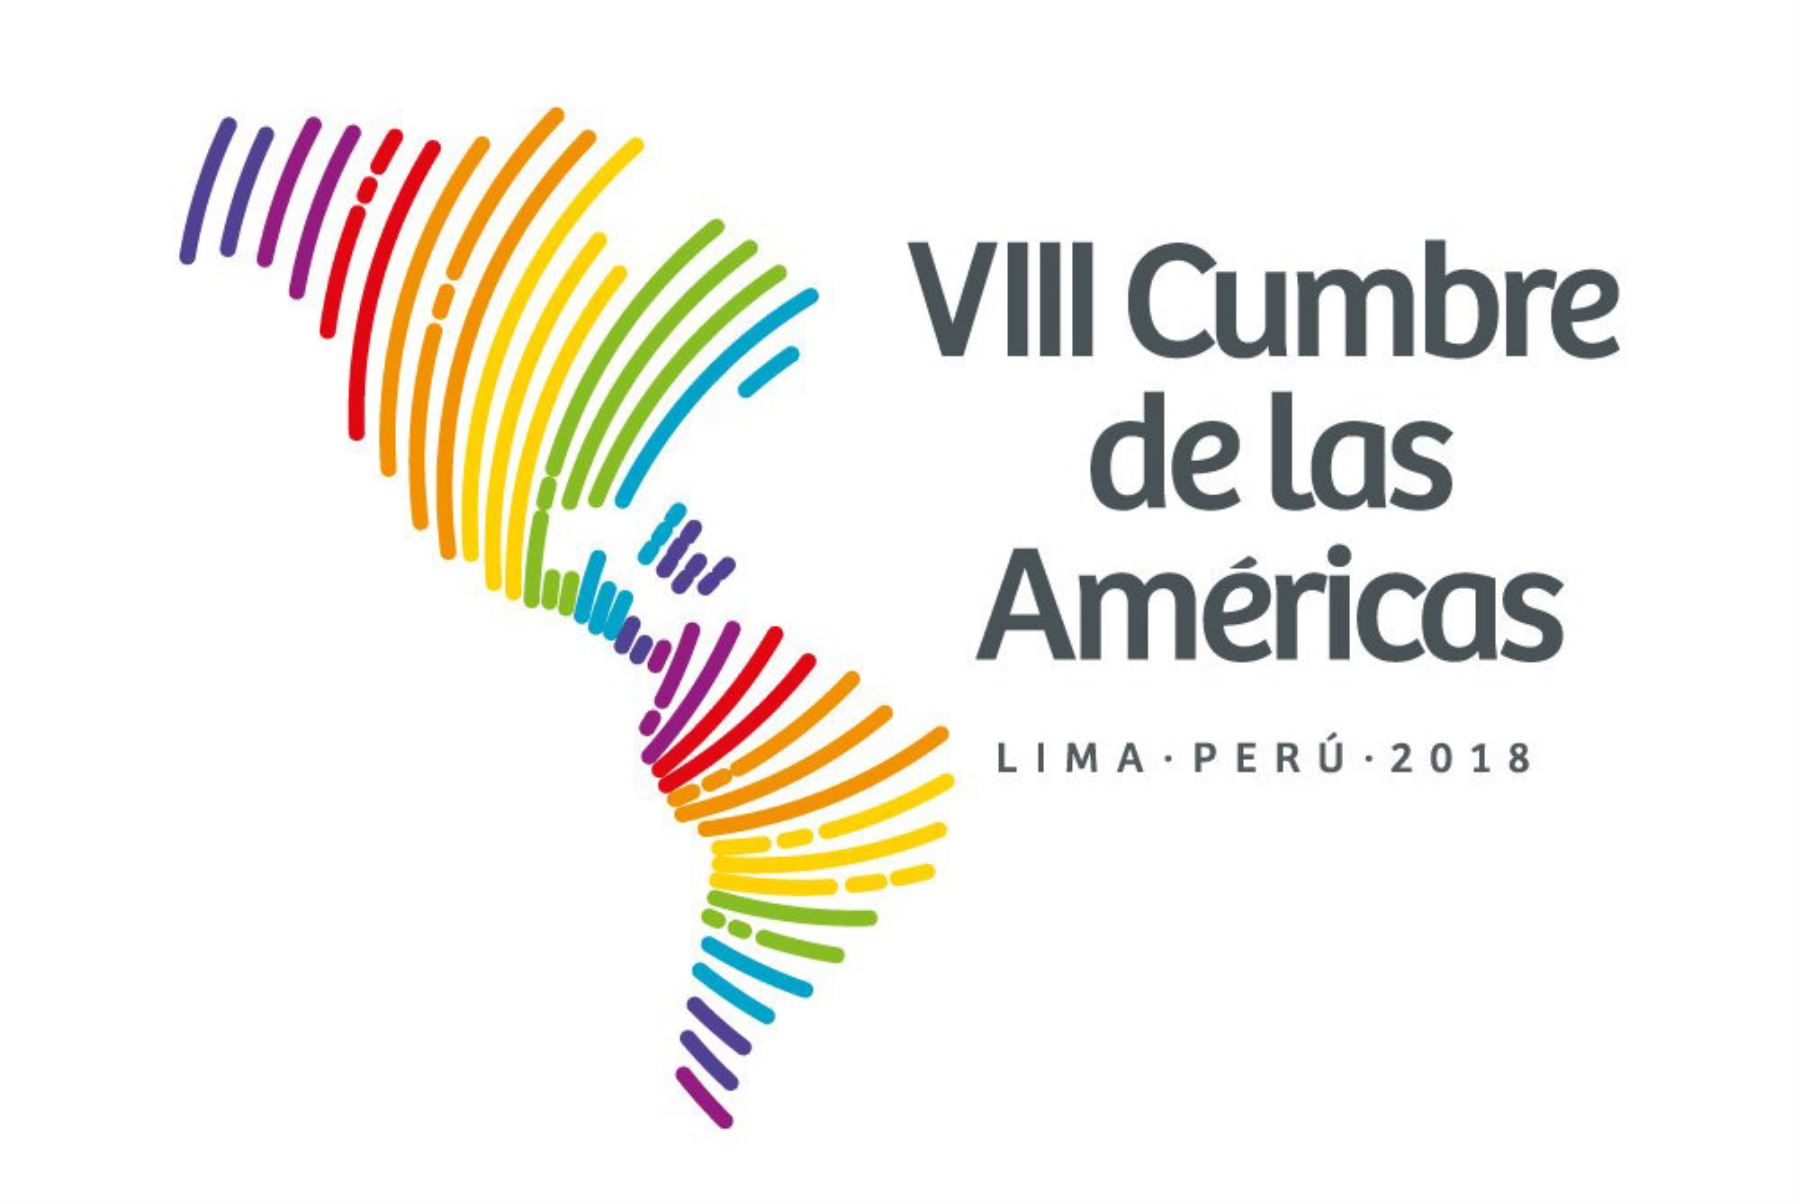 Peru: Foreign Ministry presents Summit of the Americas' official website